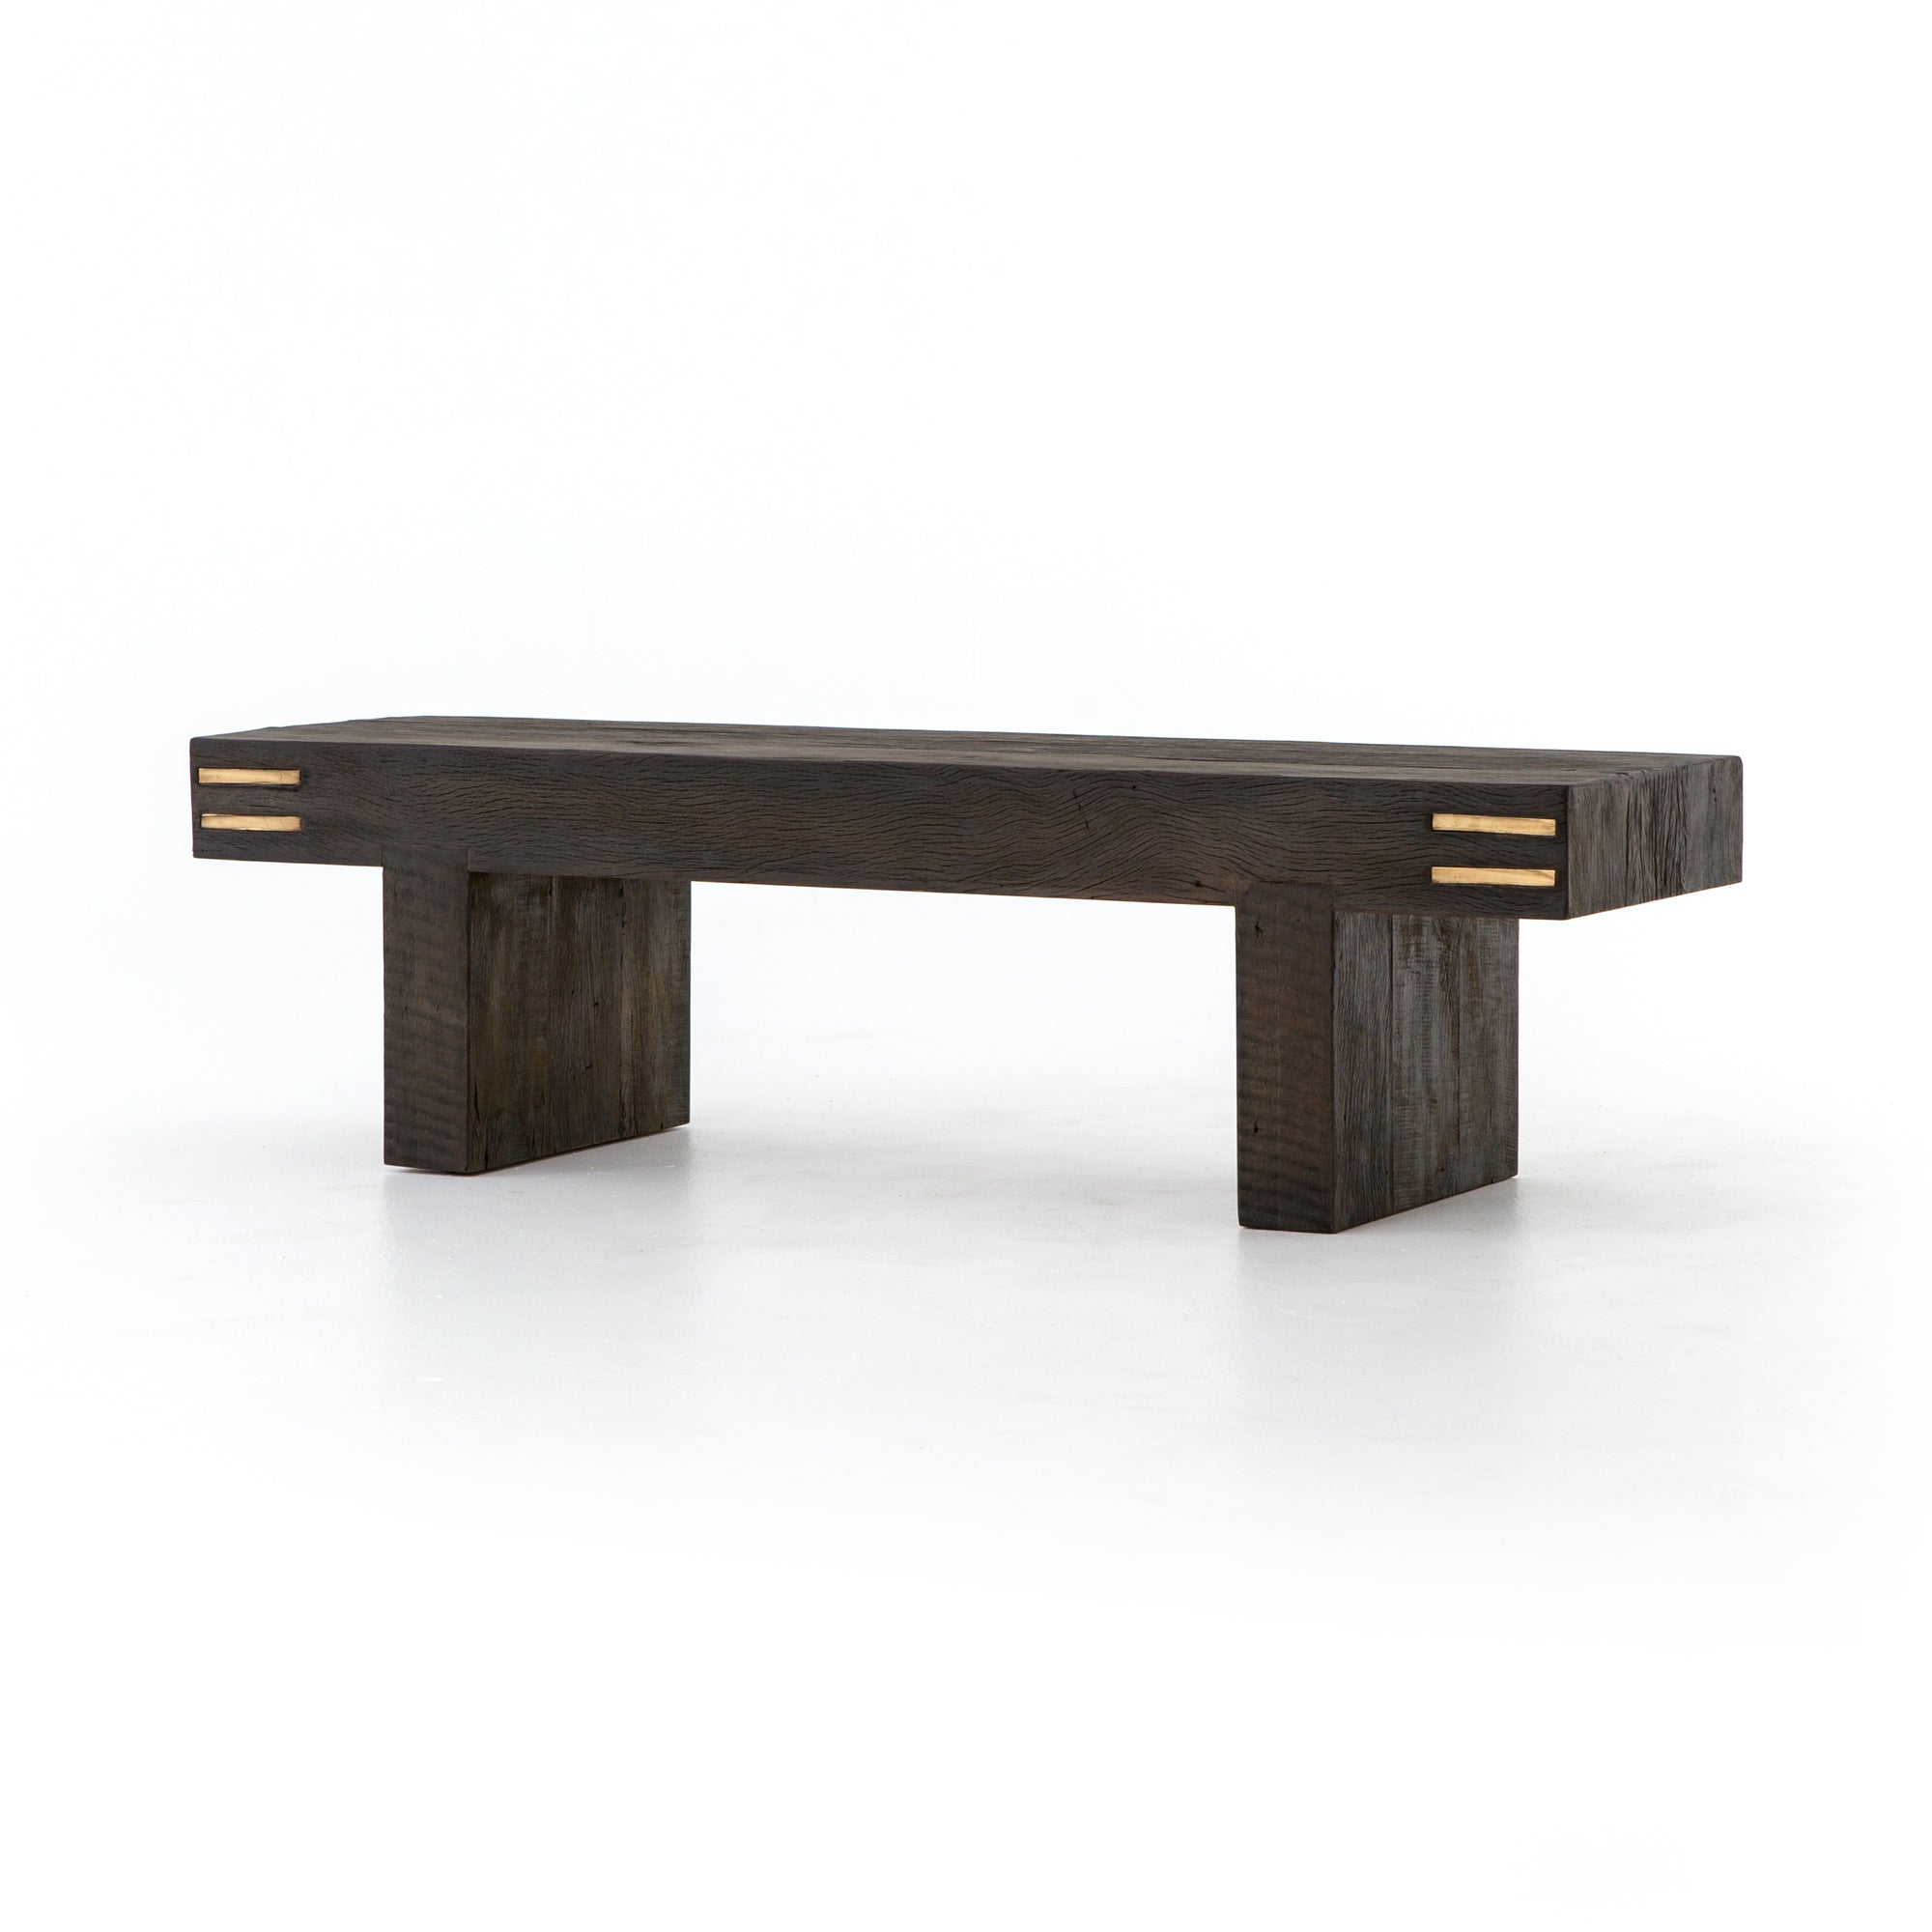 Nolan Accent Bench - Black Peroba